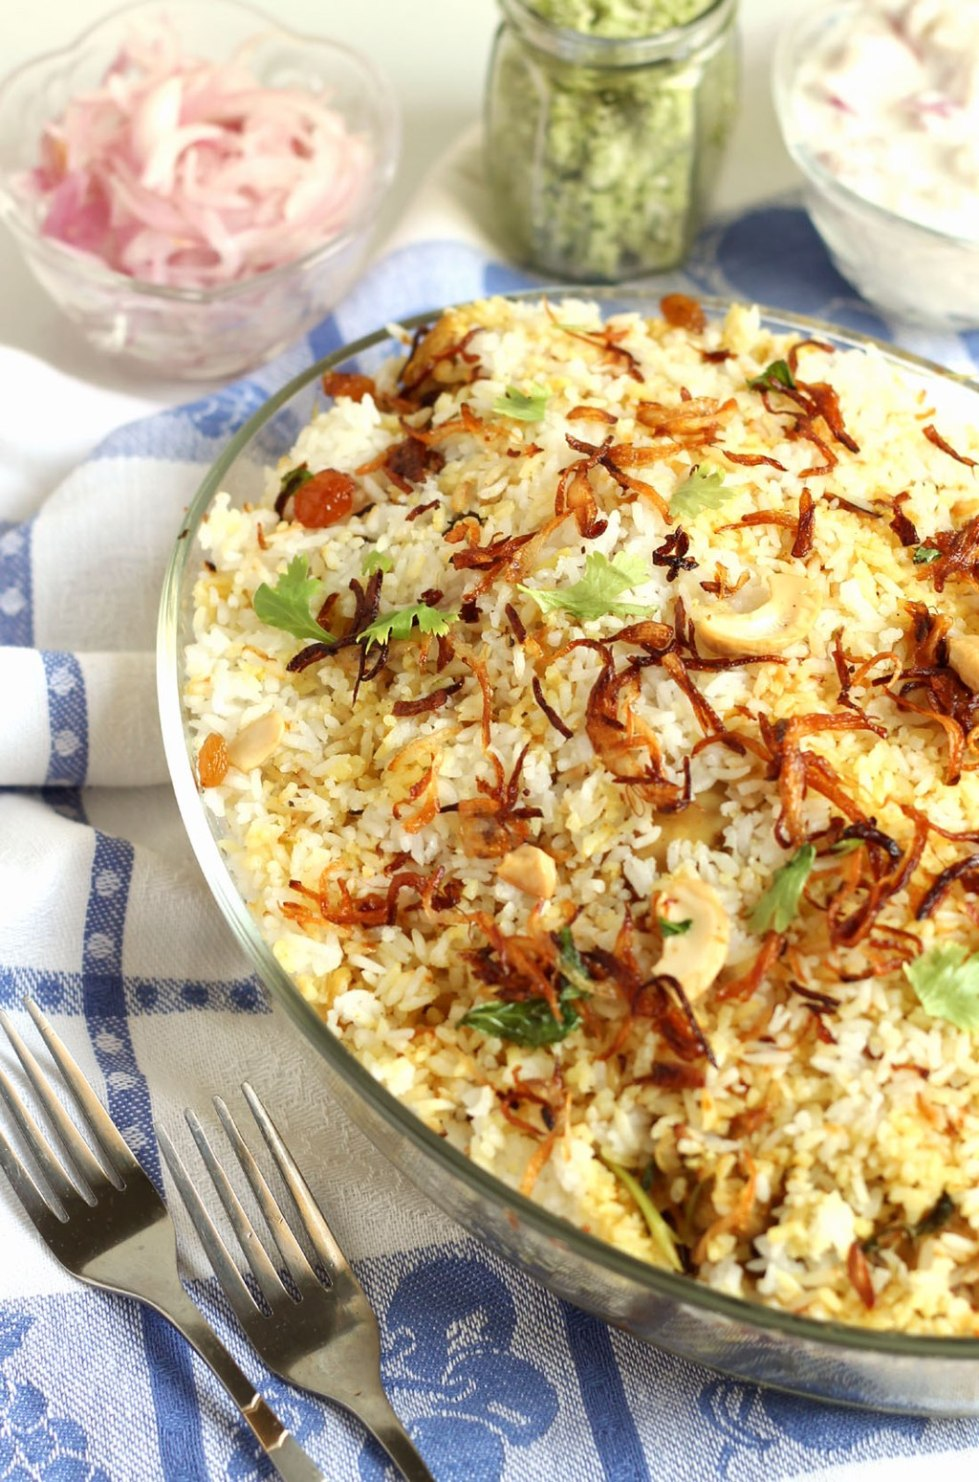 Kozhikodan biriyani or malabar biriyani recipe sujis cooking the kozhikodan biriyani is famous for its special taste and aromae main ingredients of this delicious biriyani is chicken gheespices and the special forumfinder Image collections